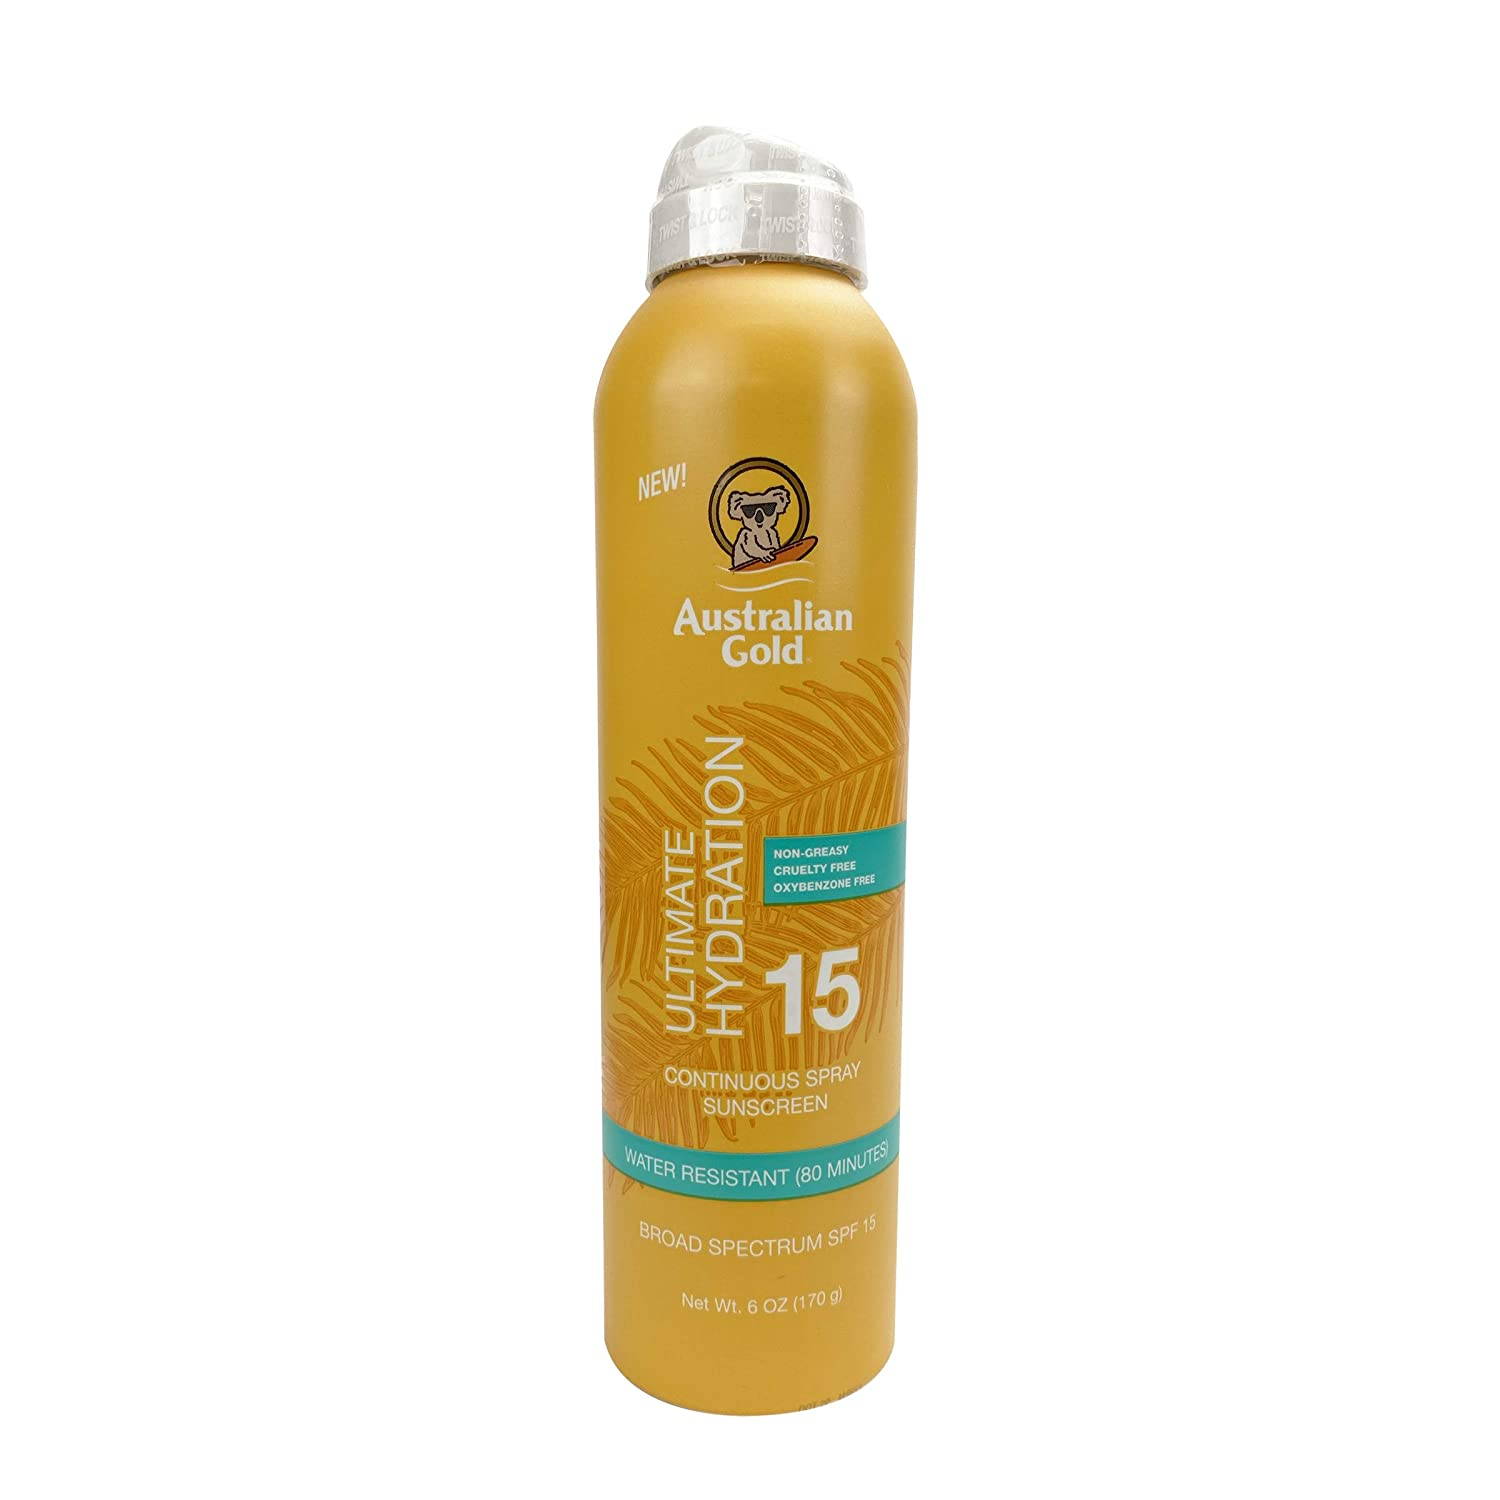 Australian Gold Continuous Spray Sunscreen SPF 15, 6 Ounce   Dries Fast   Broad Spectrum   Water Resistant   Non-Greasy   Oxybenzone Free   Cruelty Free